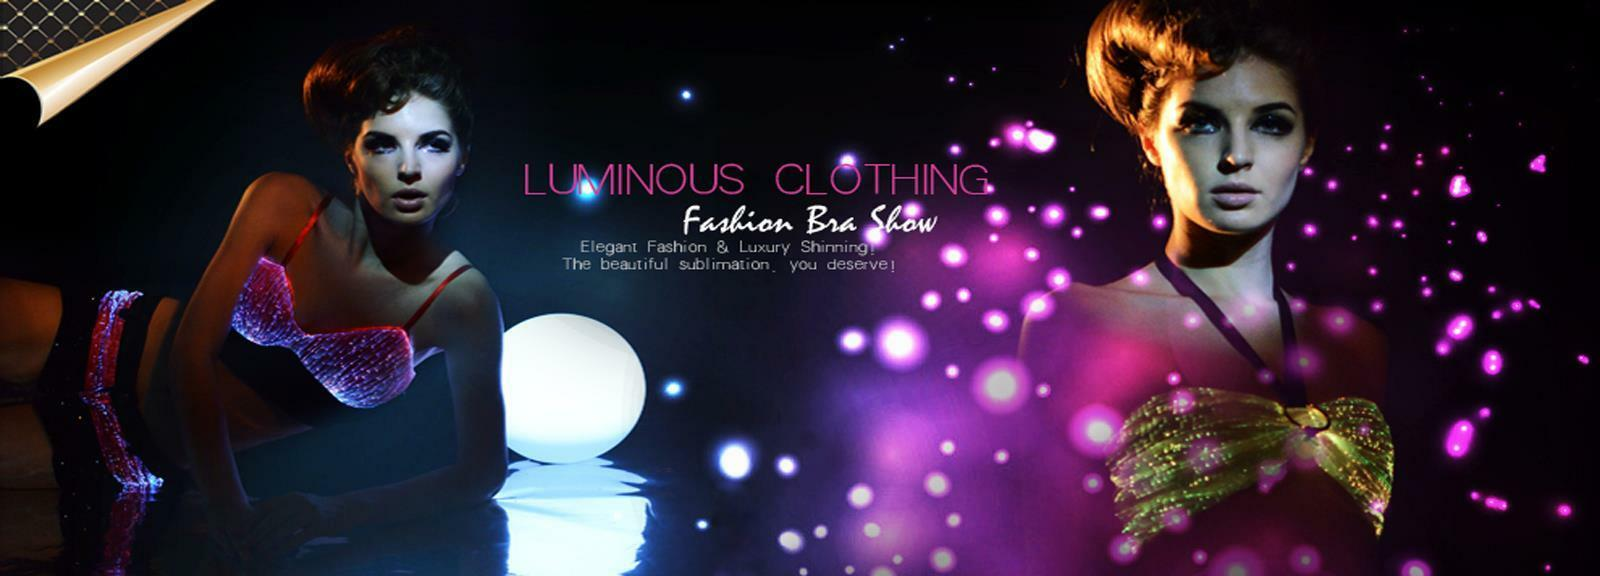 fashion luminous clothing